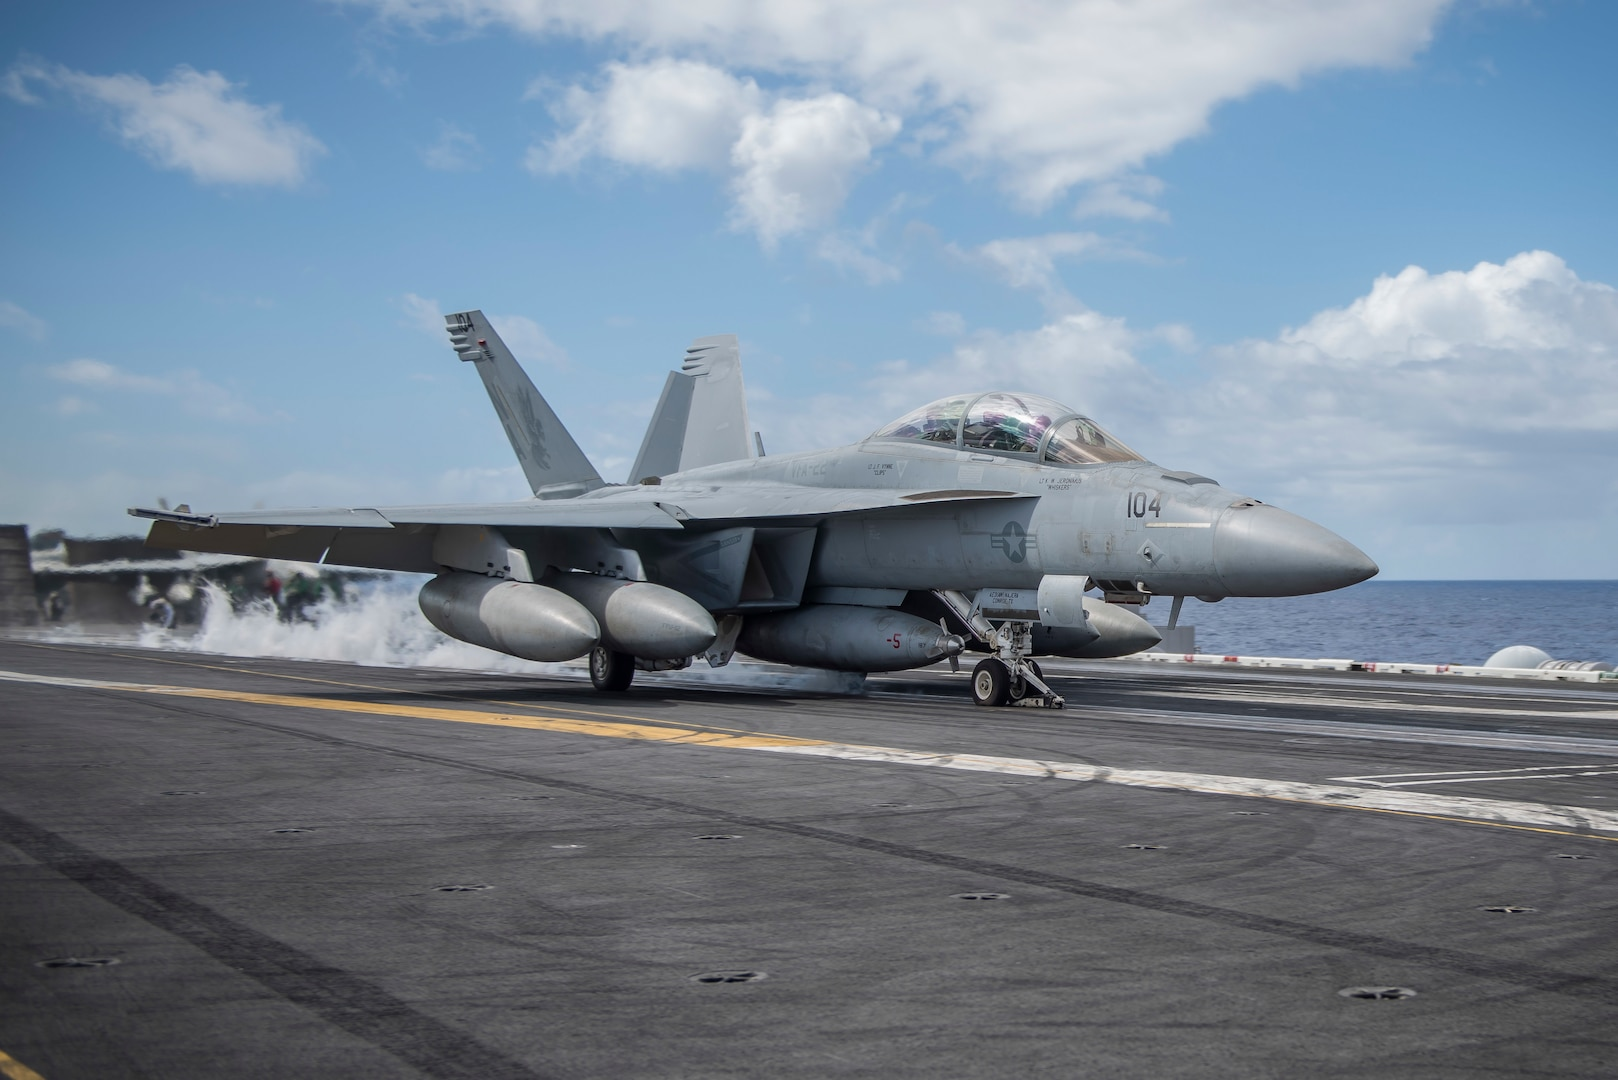 (U.S. Navy photo by Mass Communication Specialist 3rd Class Spencer Roberts/Released)